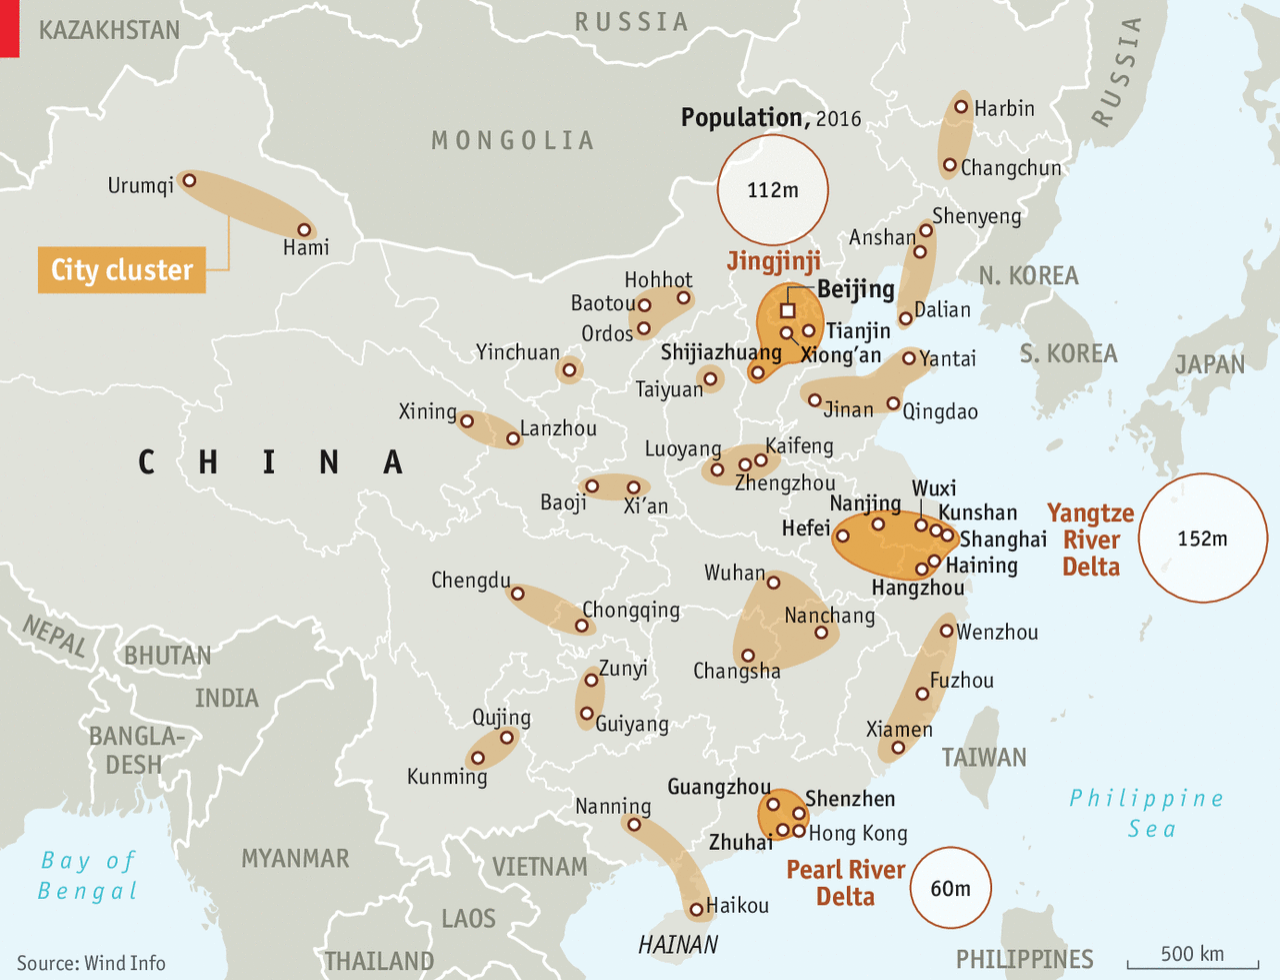 The Chinese government's new urban cluster plan